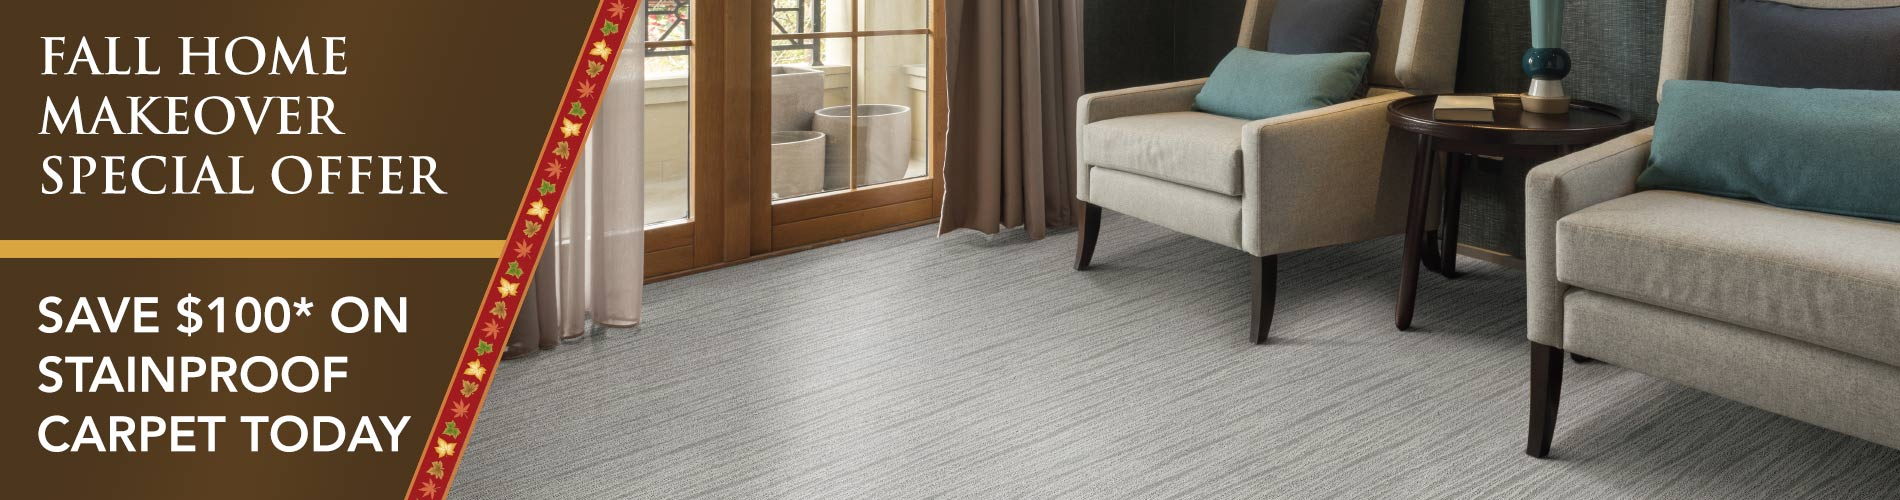 Save $100* on stainproof carpet today!